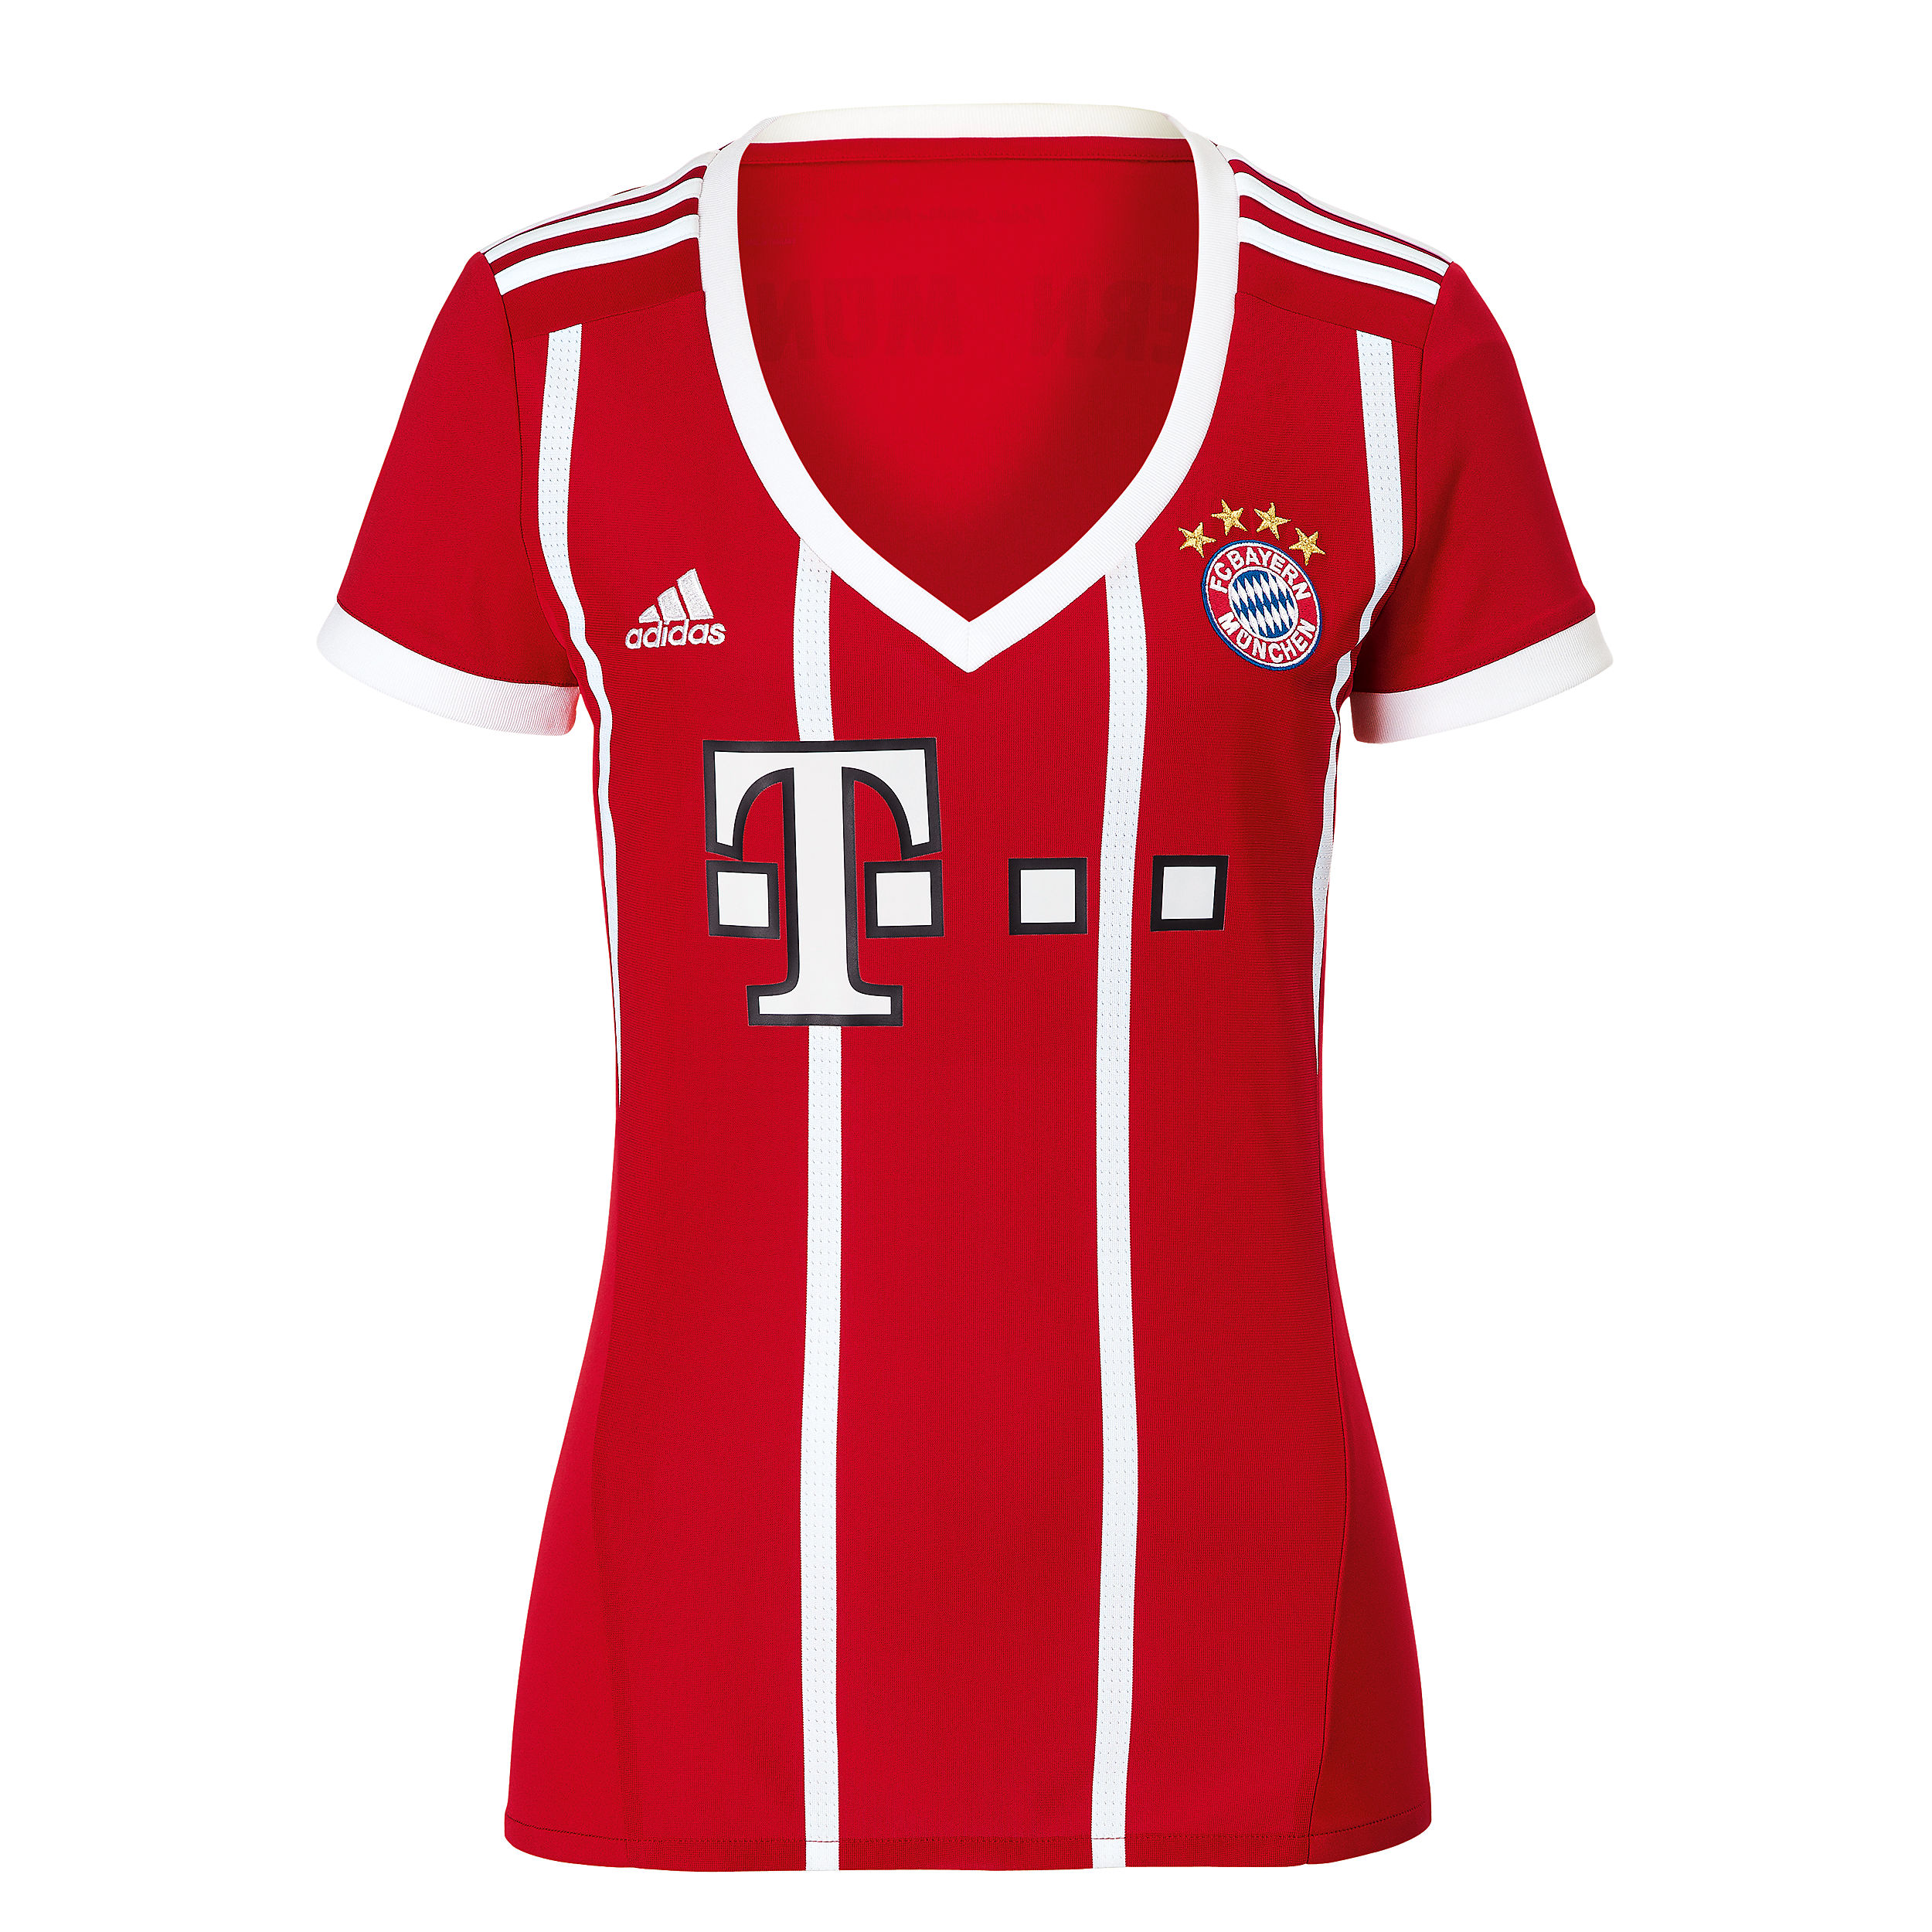 bayern trikot damen fc bayern m nchen adidas trikot champions league heim fc bayern trikot. Black Bedroom Furniture Sets. Home Design Ideas